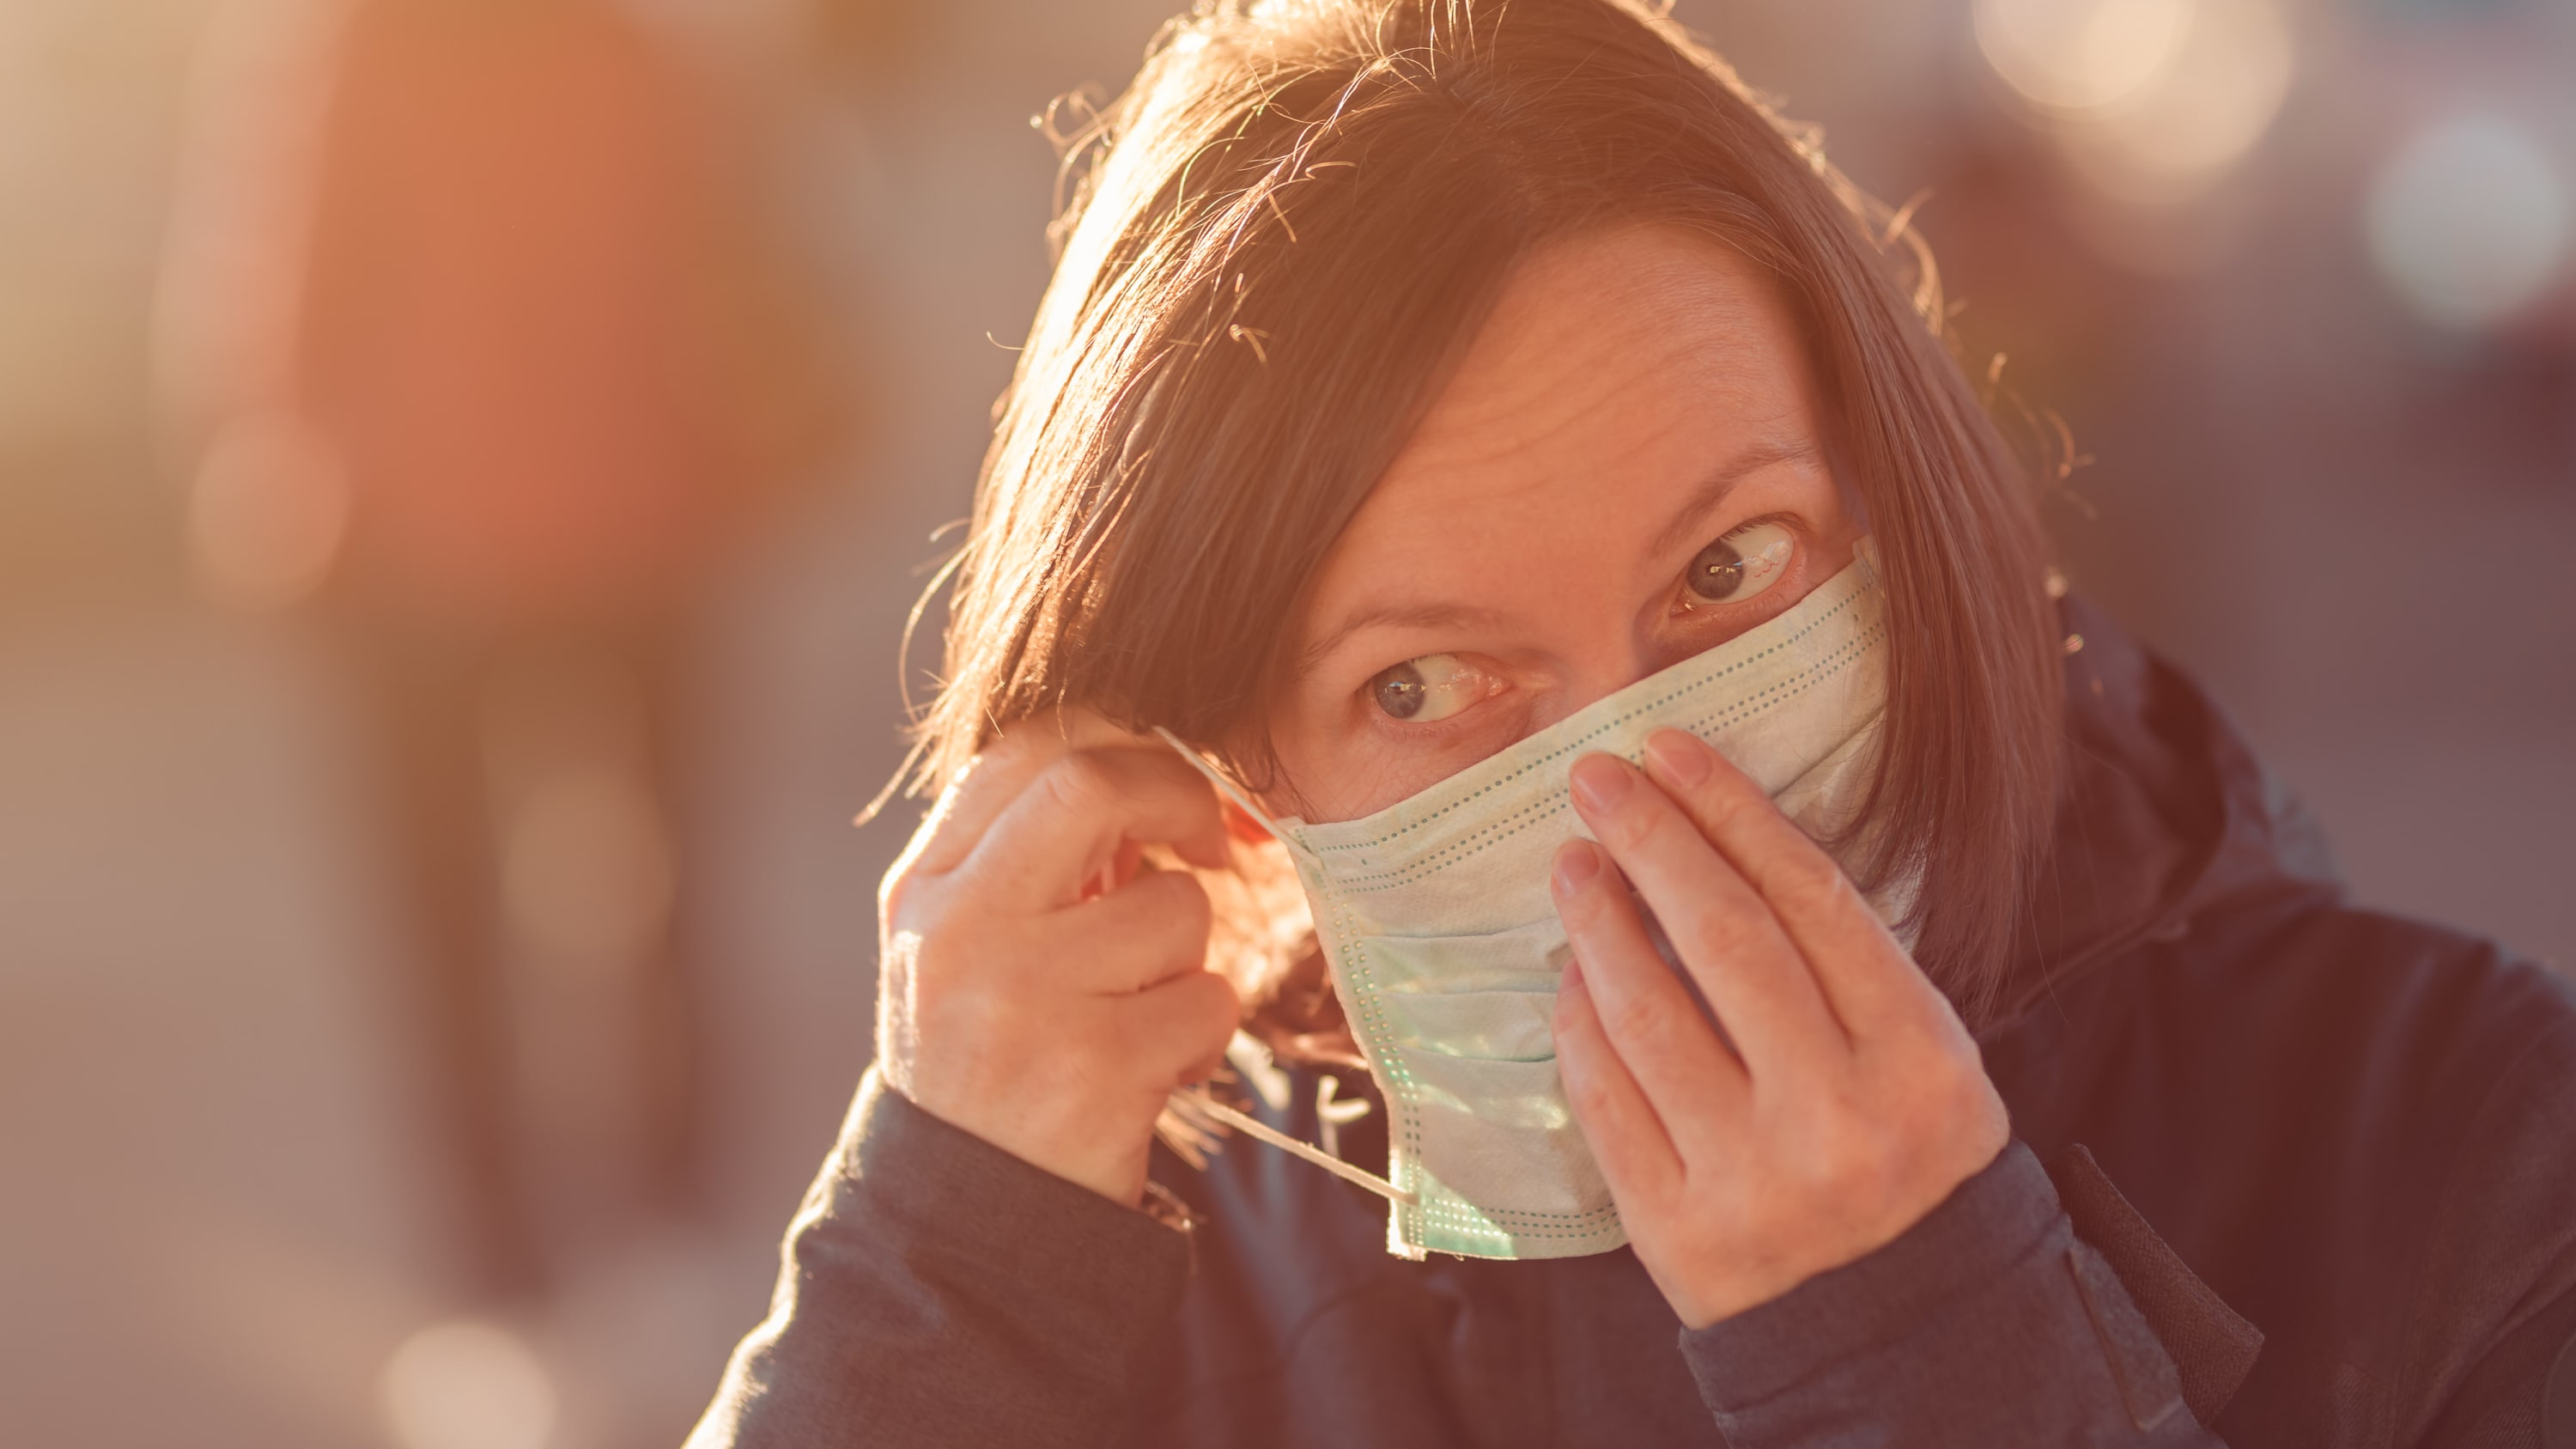 Woman with face protective mask standing on the street, possibly with post-COVID-19 symptoms